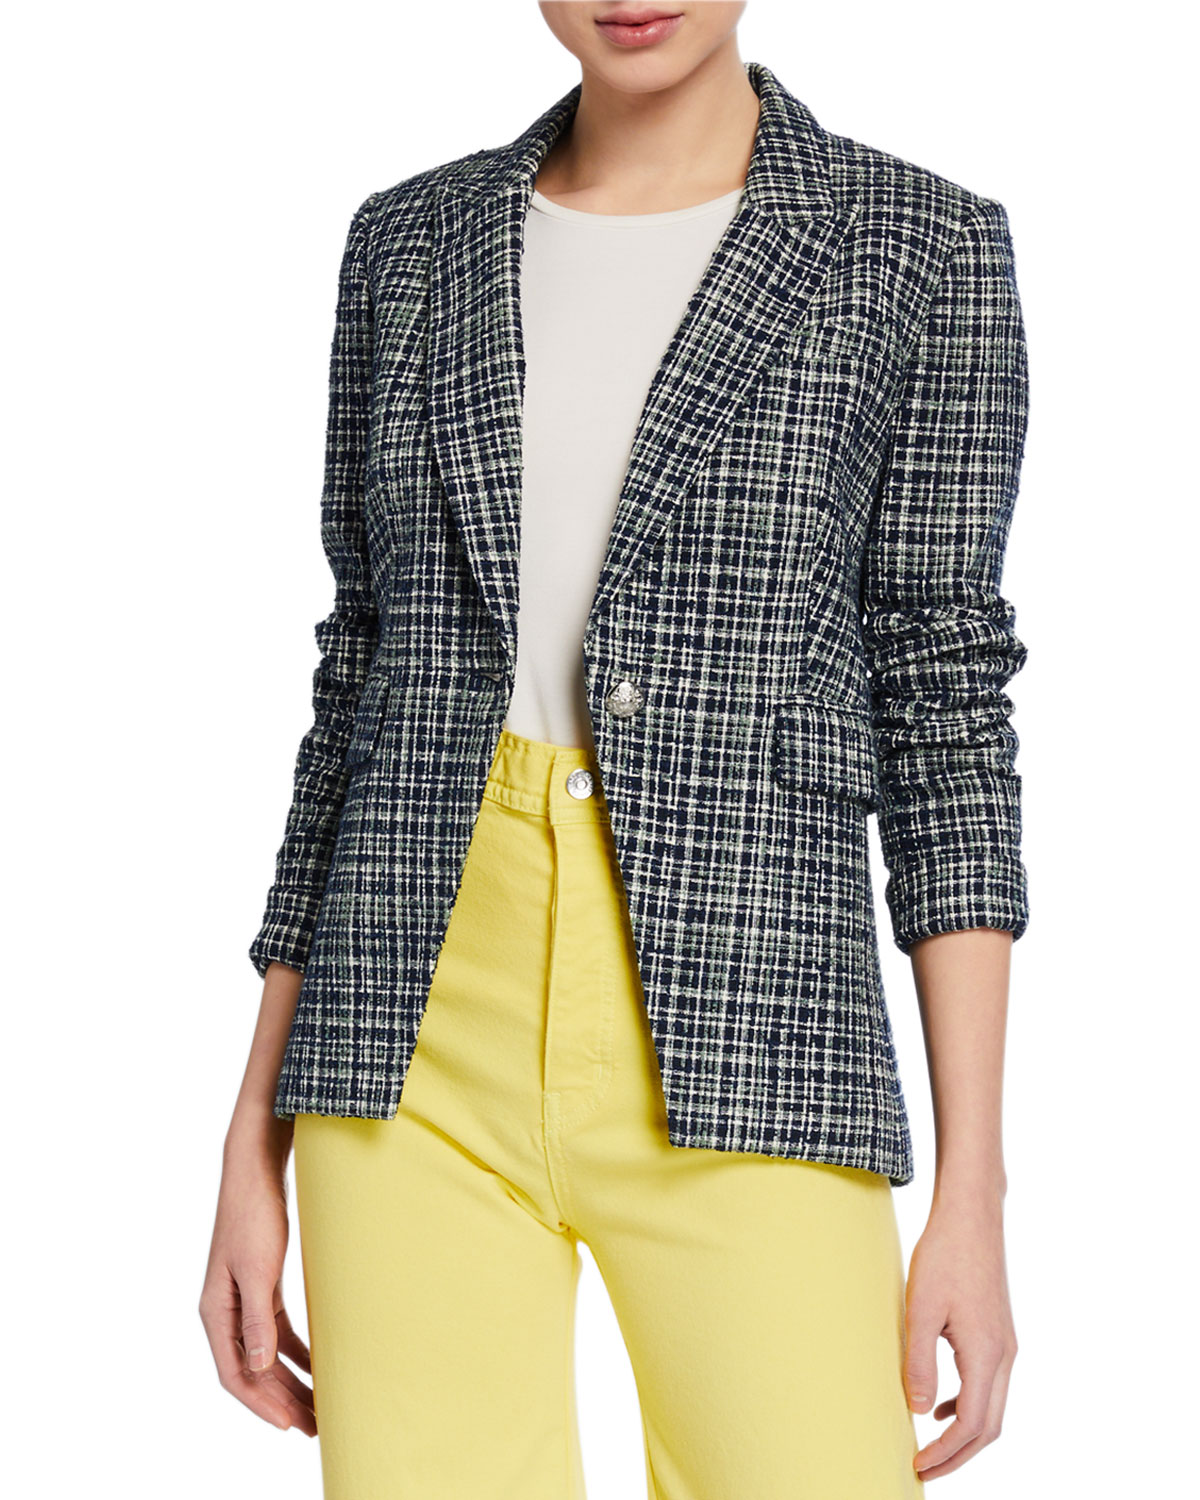 Veronica Beard Jackets CROSSHATCH ONE-BUTTON CUTAWAY JACKET